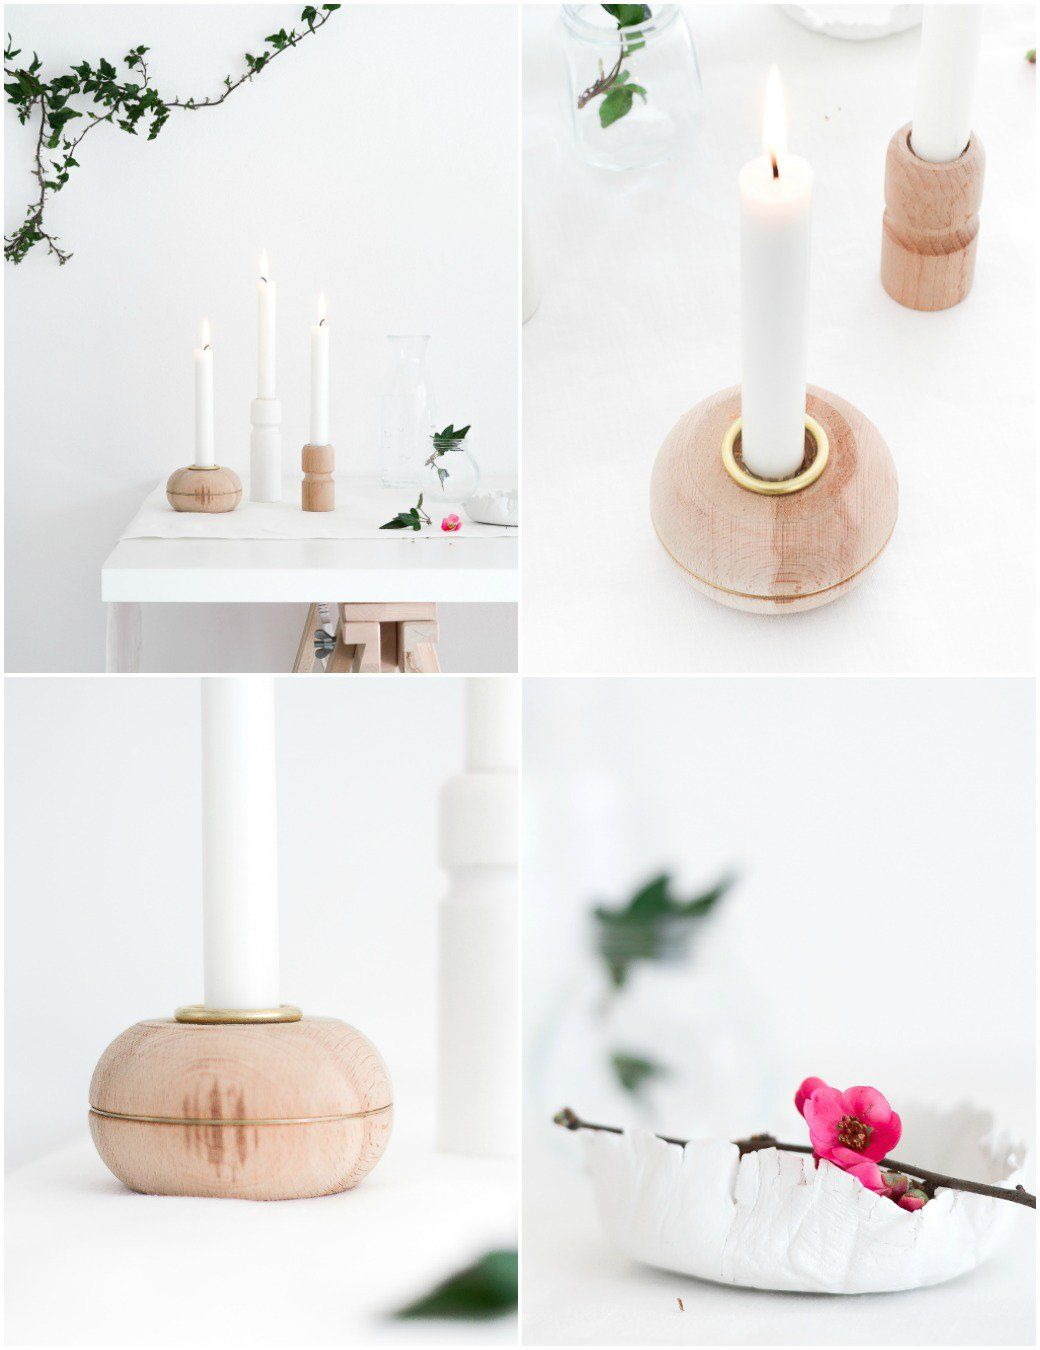 DIY Candle Holders From Furniture Legs